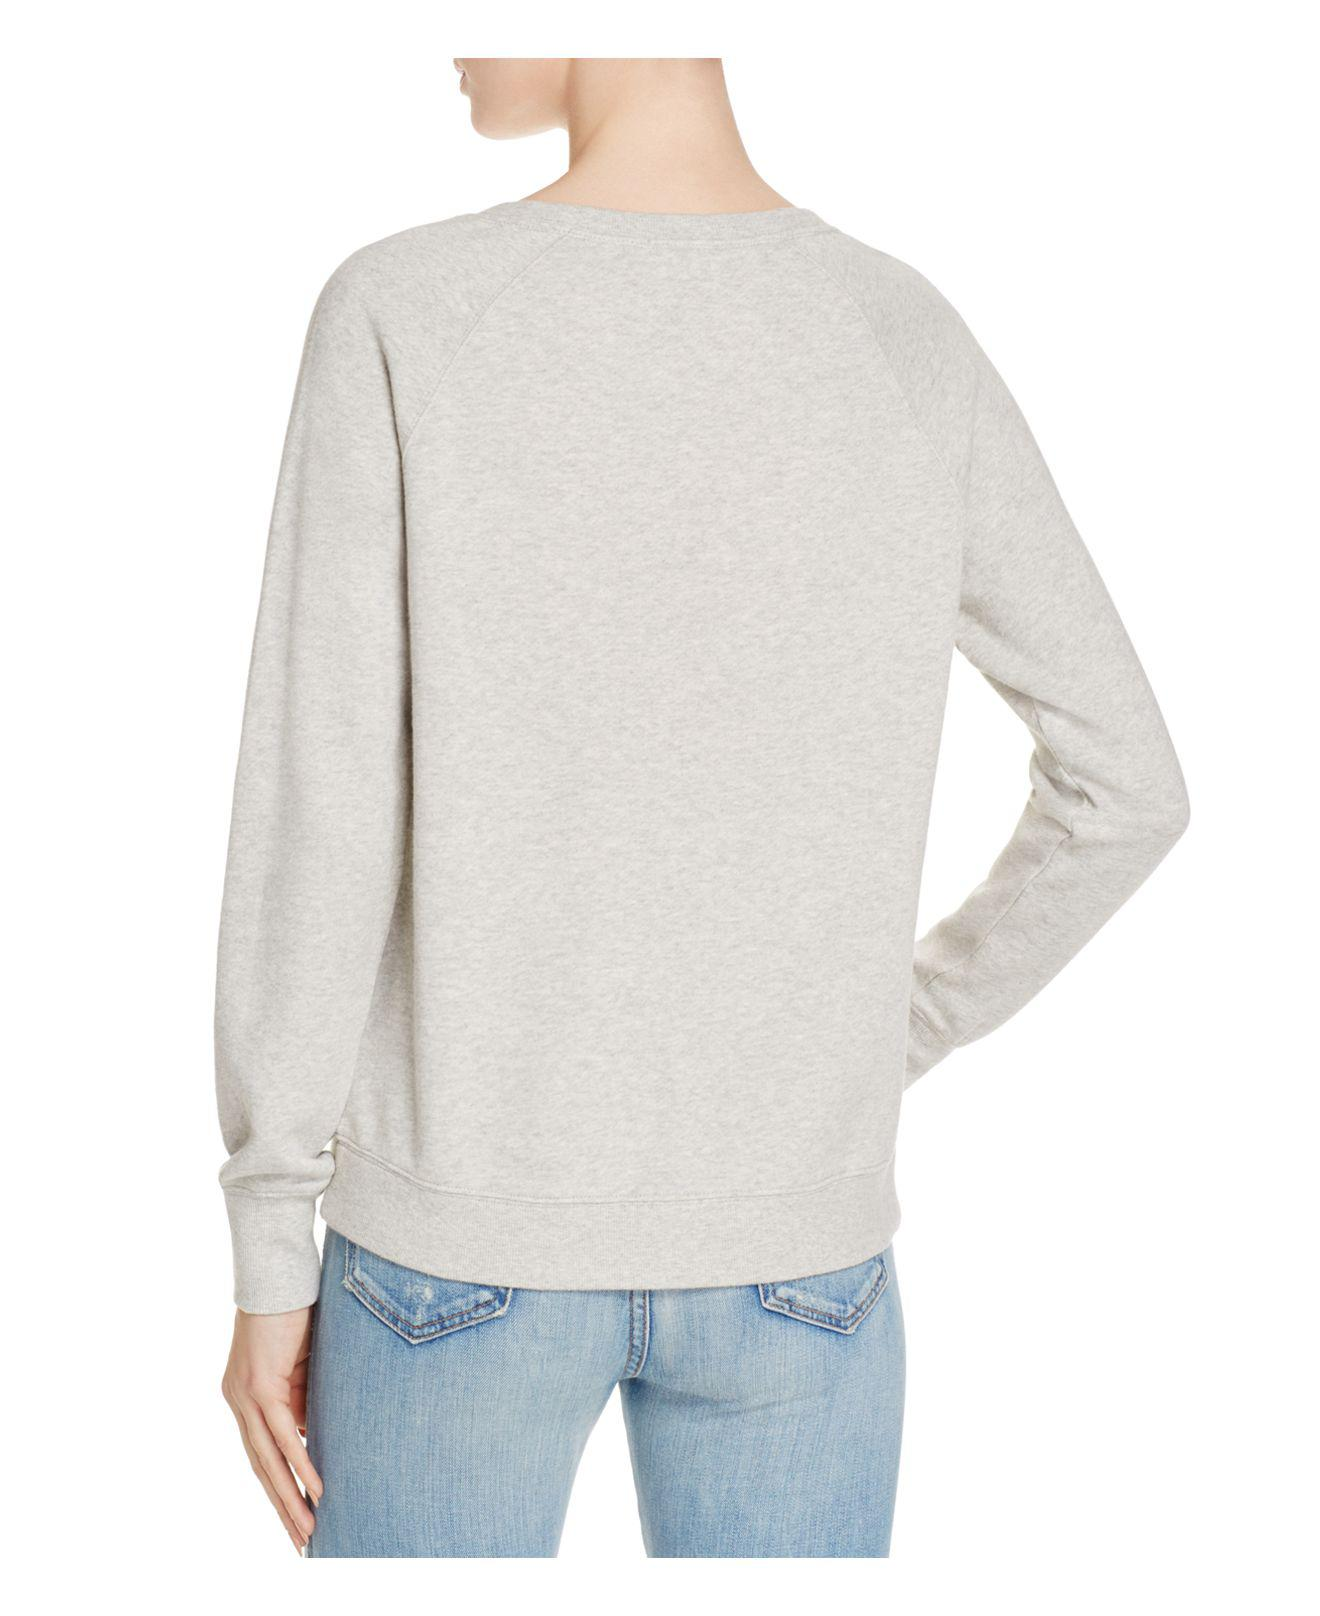 92286b689d32e8 Soft Joie Annora Embroidered Sweatshirt in Gray - Lyst